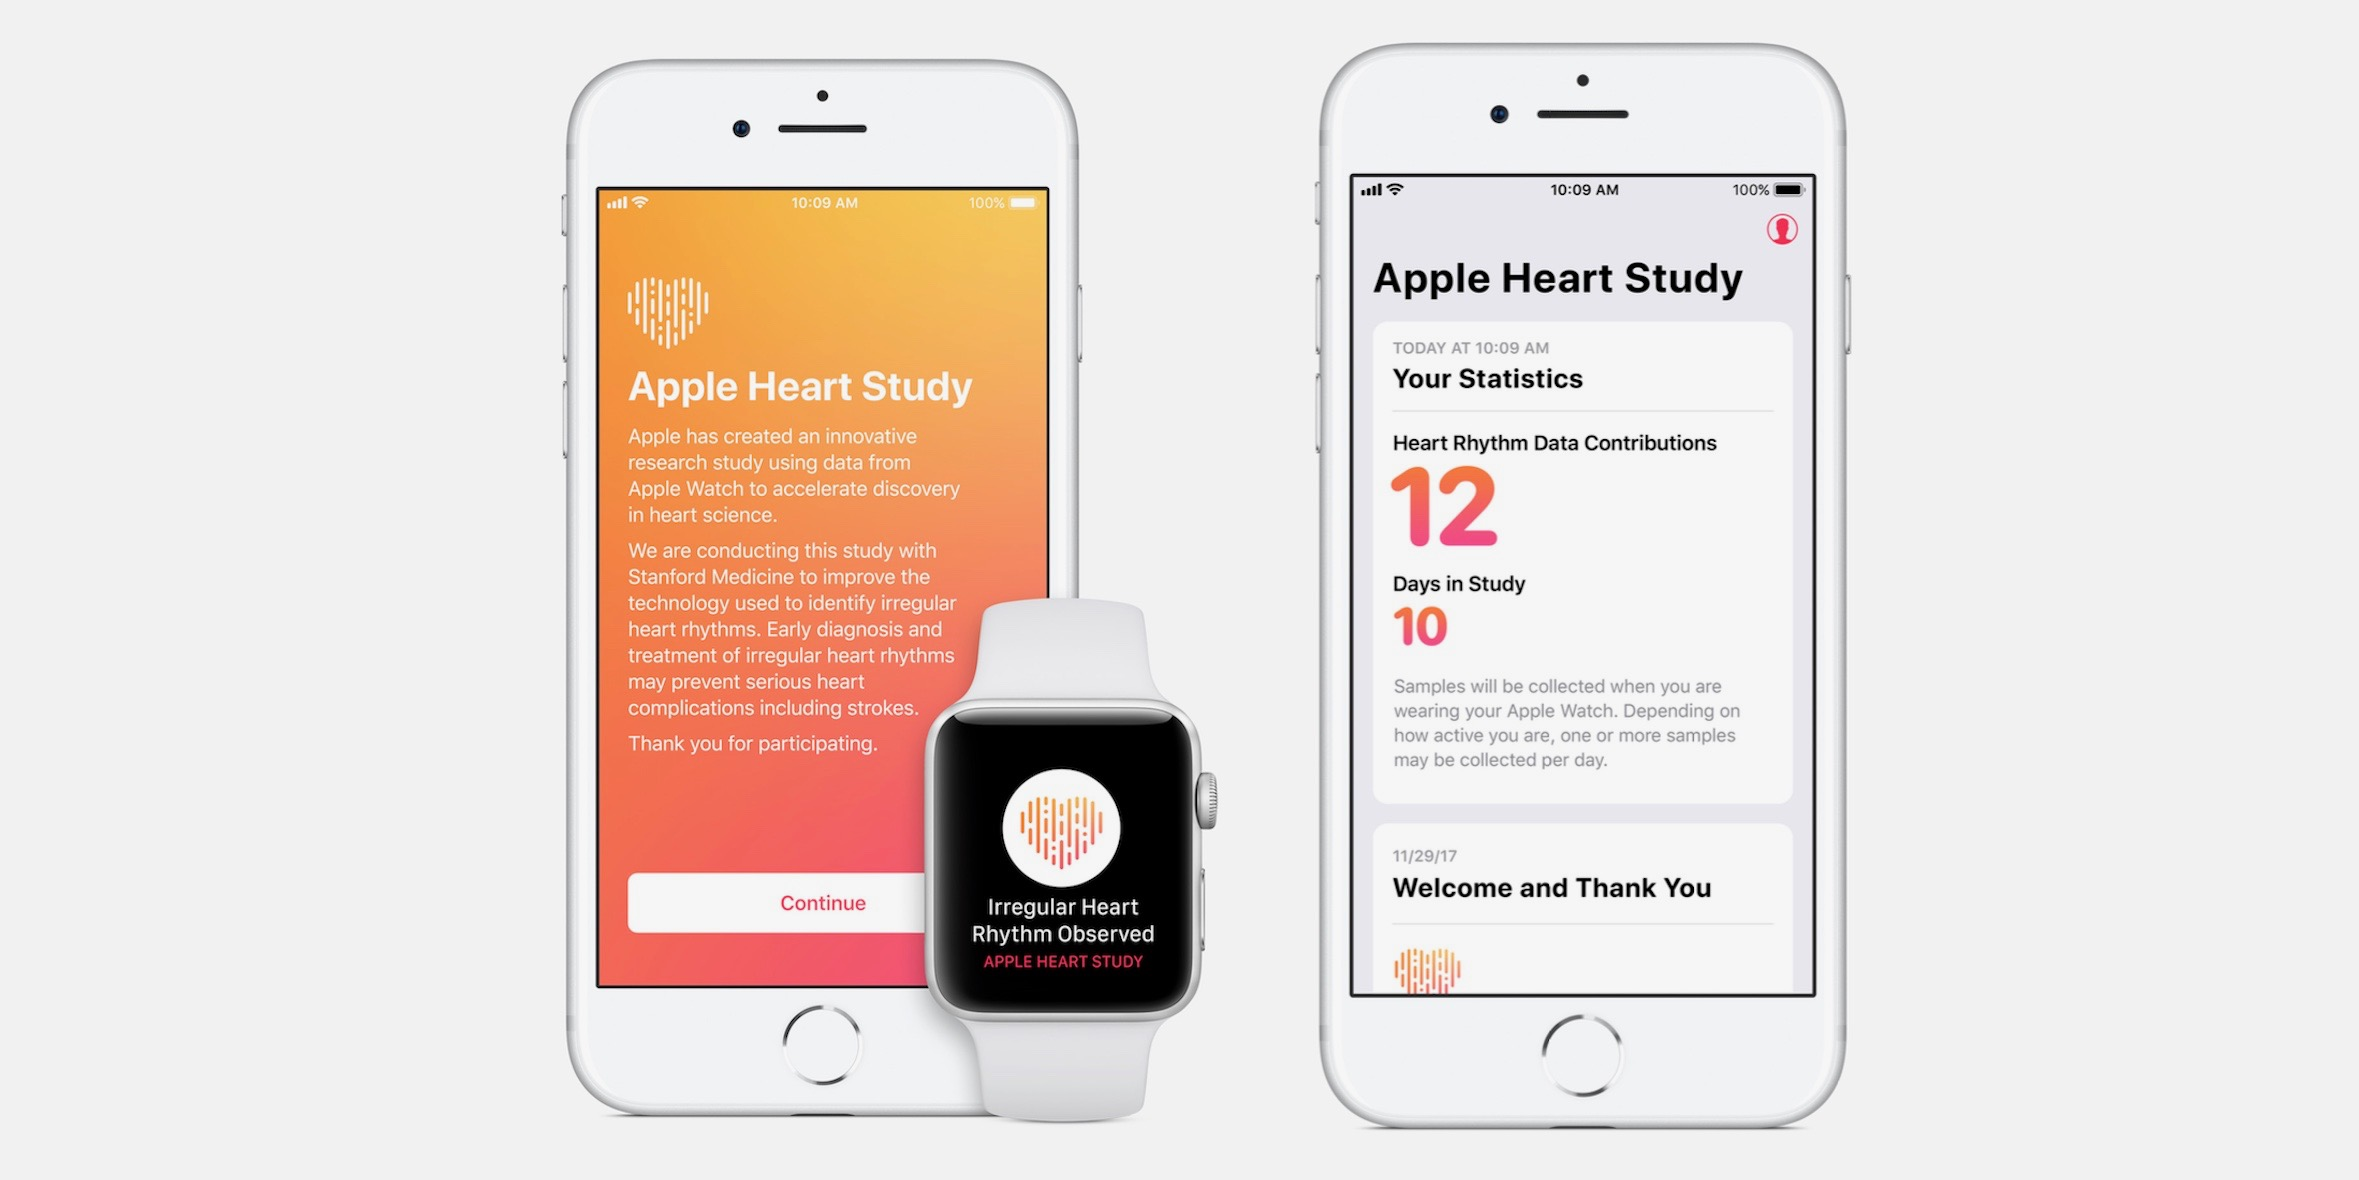 Apple and Stanford Medicine announce full results from Apple Watch Heart Study